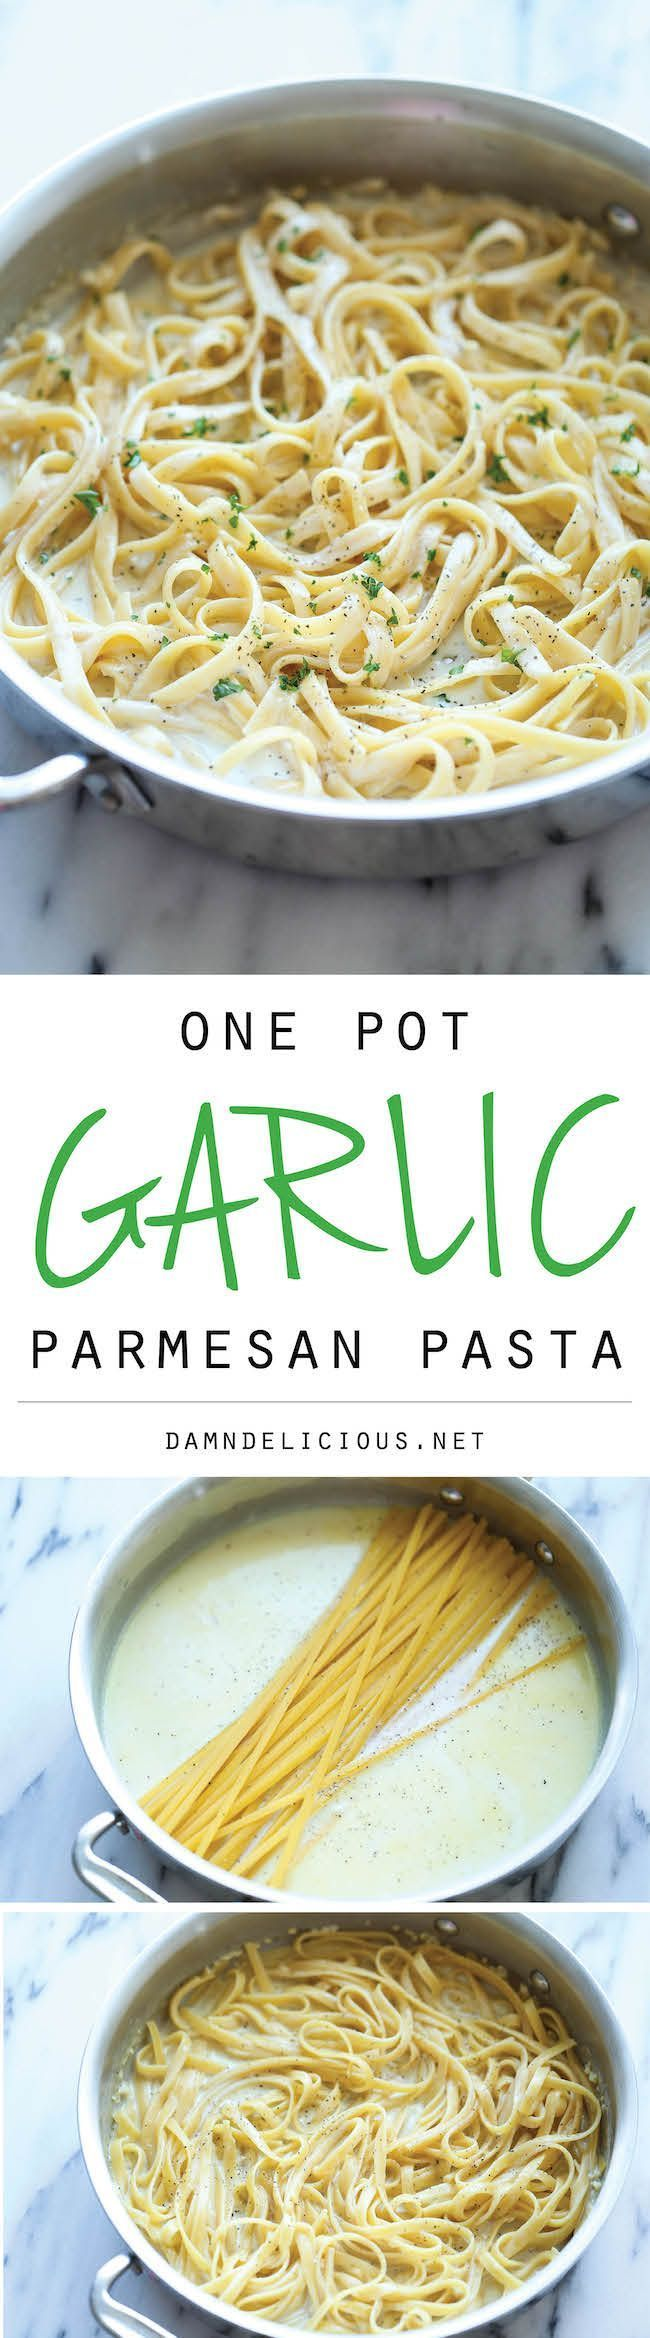 One Pot Garlic Parmesan Pasta - The easiest and creamiest pasta made in a single pot - even the pasta gets cooked right in the pan! How easy is that? ☮ pinned by http://www.wfpblogs.com/author/southfloridah2o/